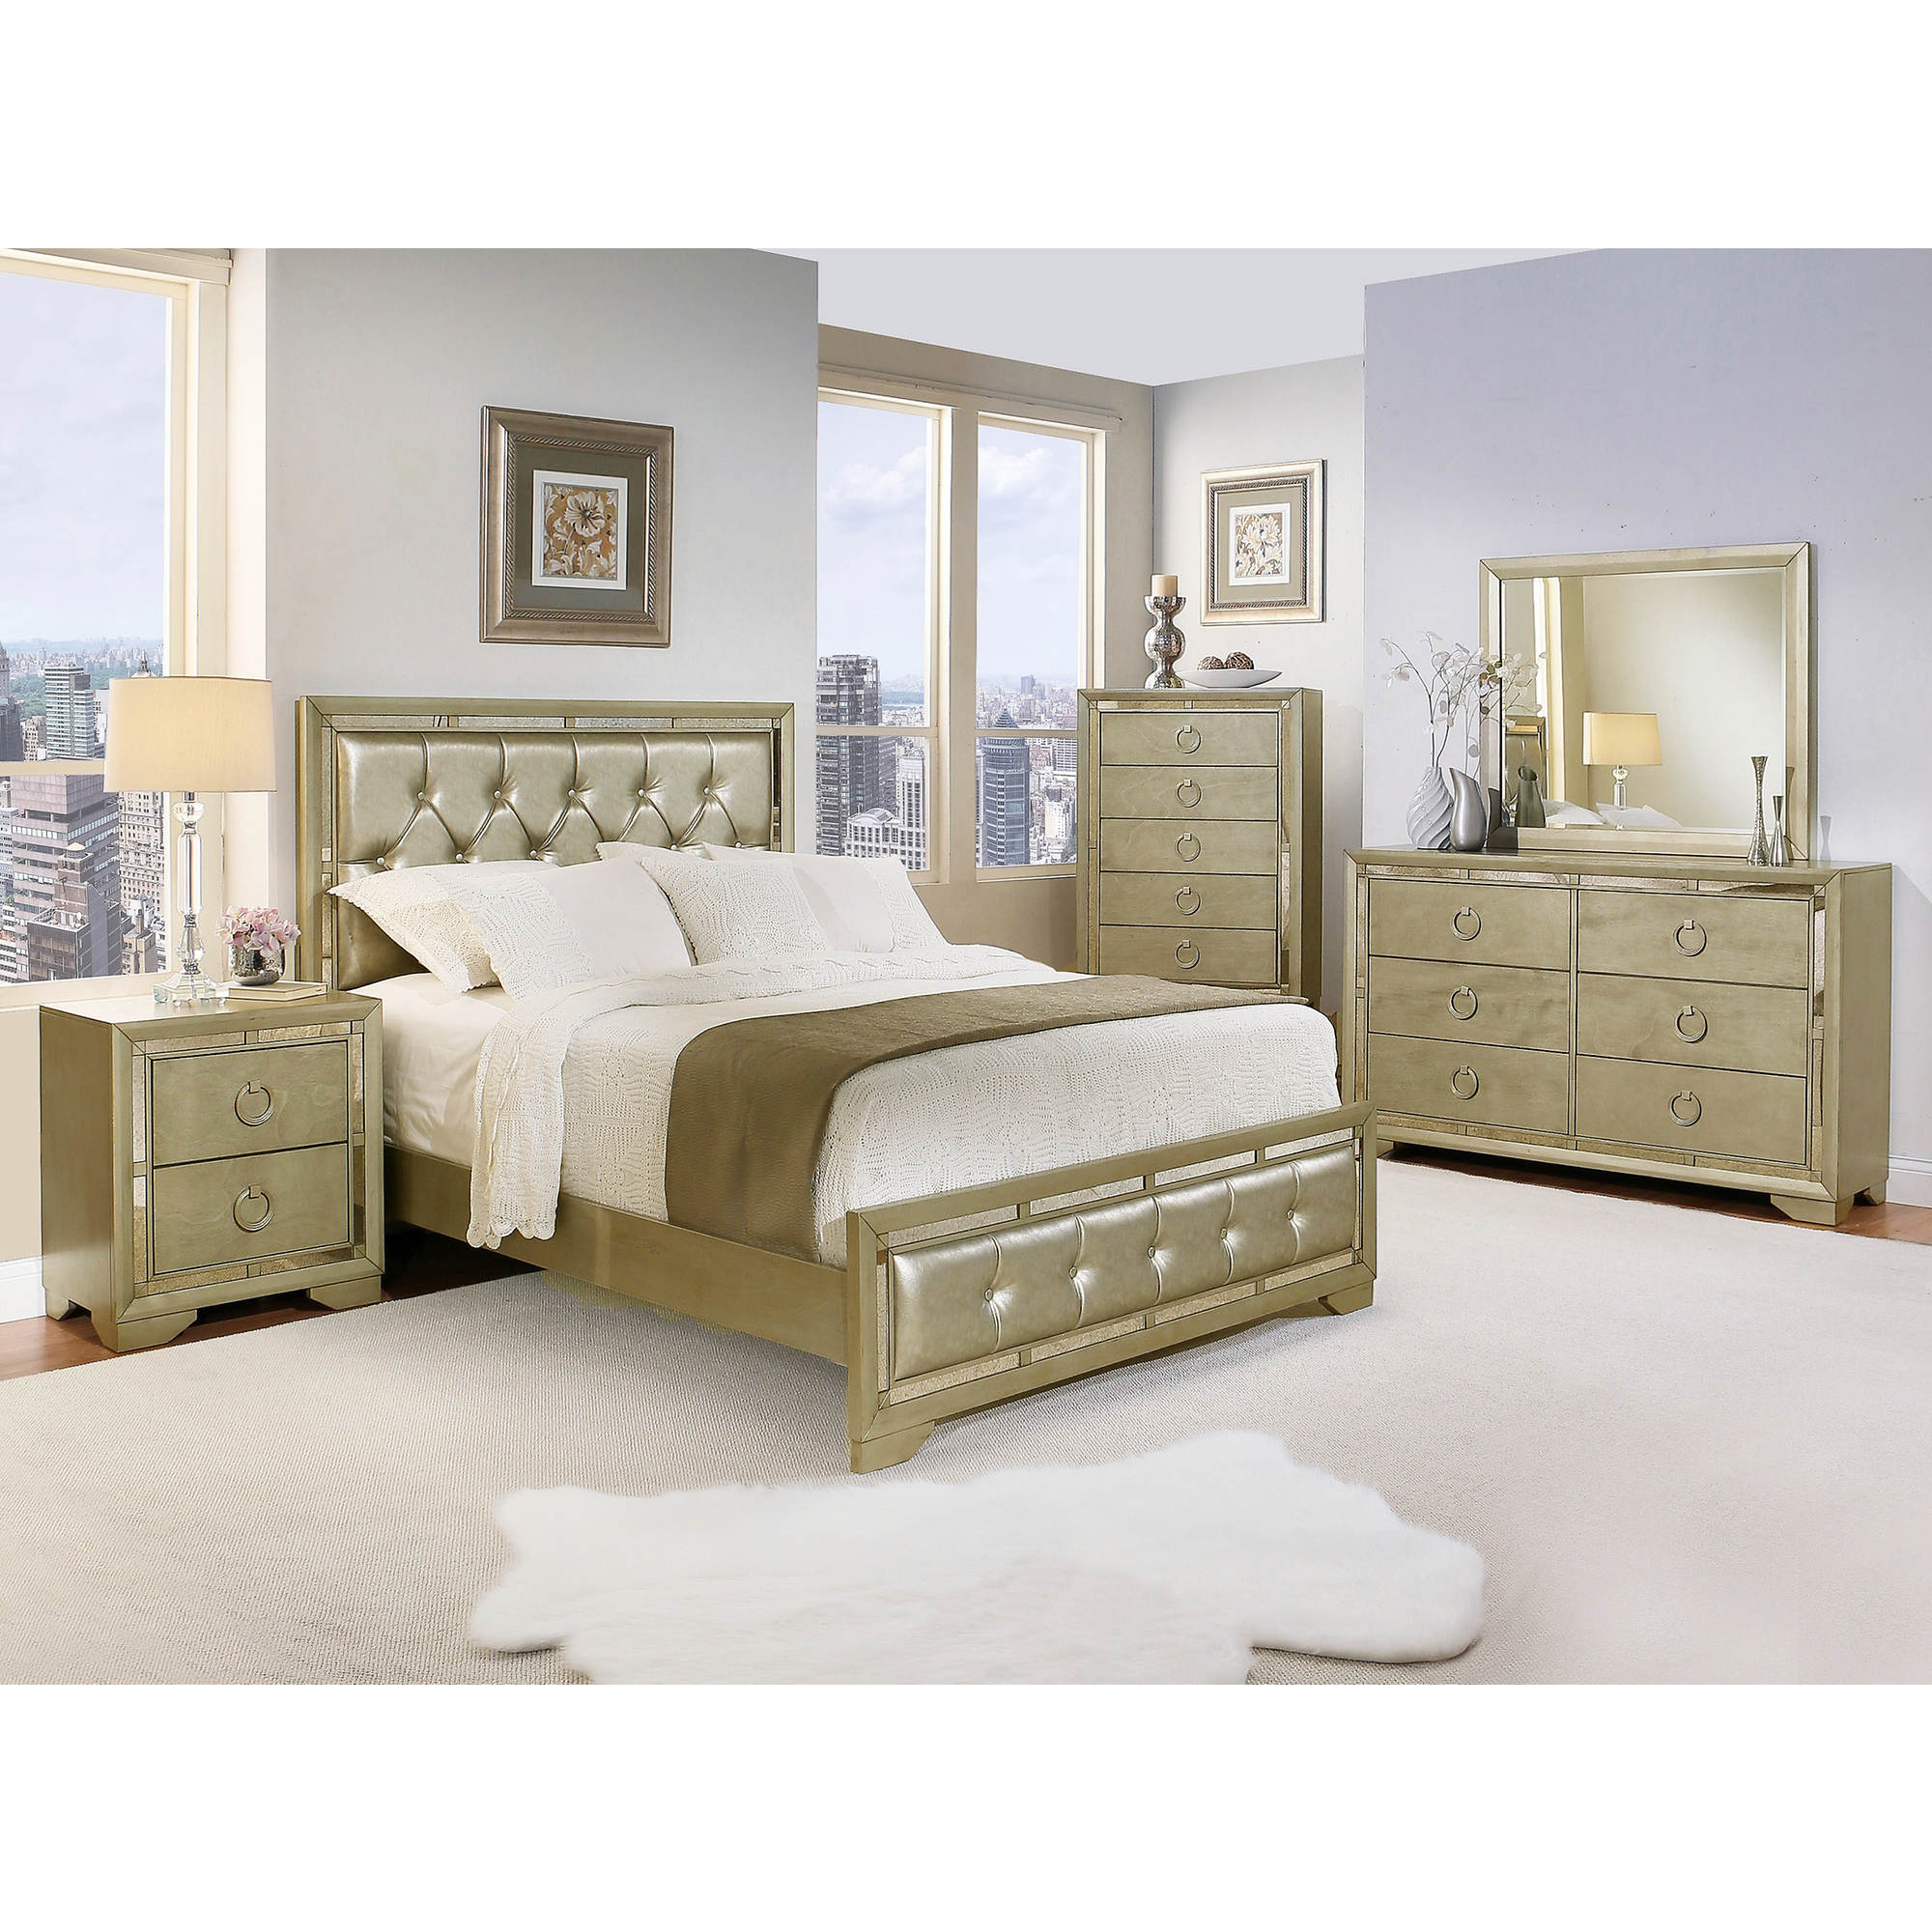 Grey Bedroom Furniture Set: Abbyson Living Penelope Queen-Size 6-Pc. Mirrored Bedroom